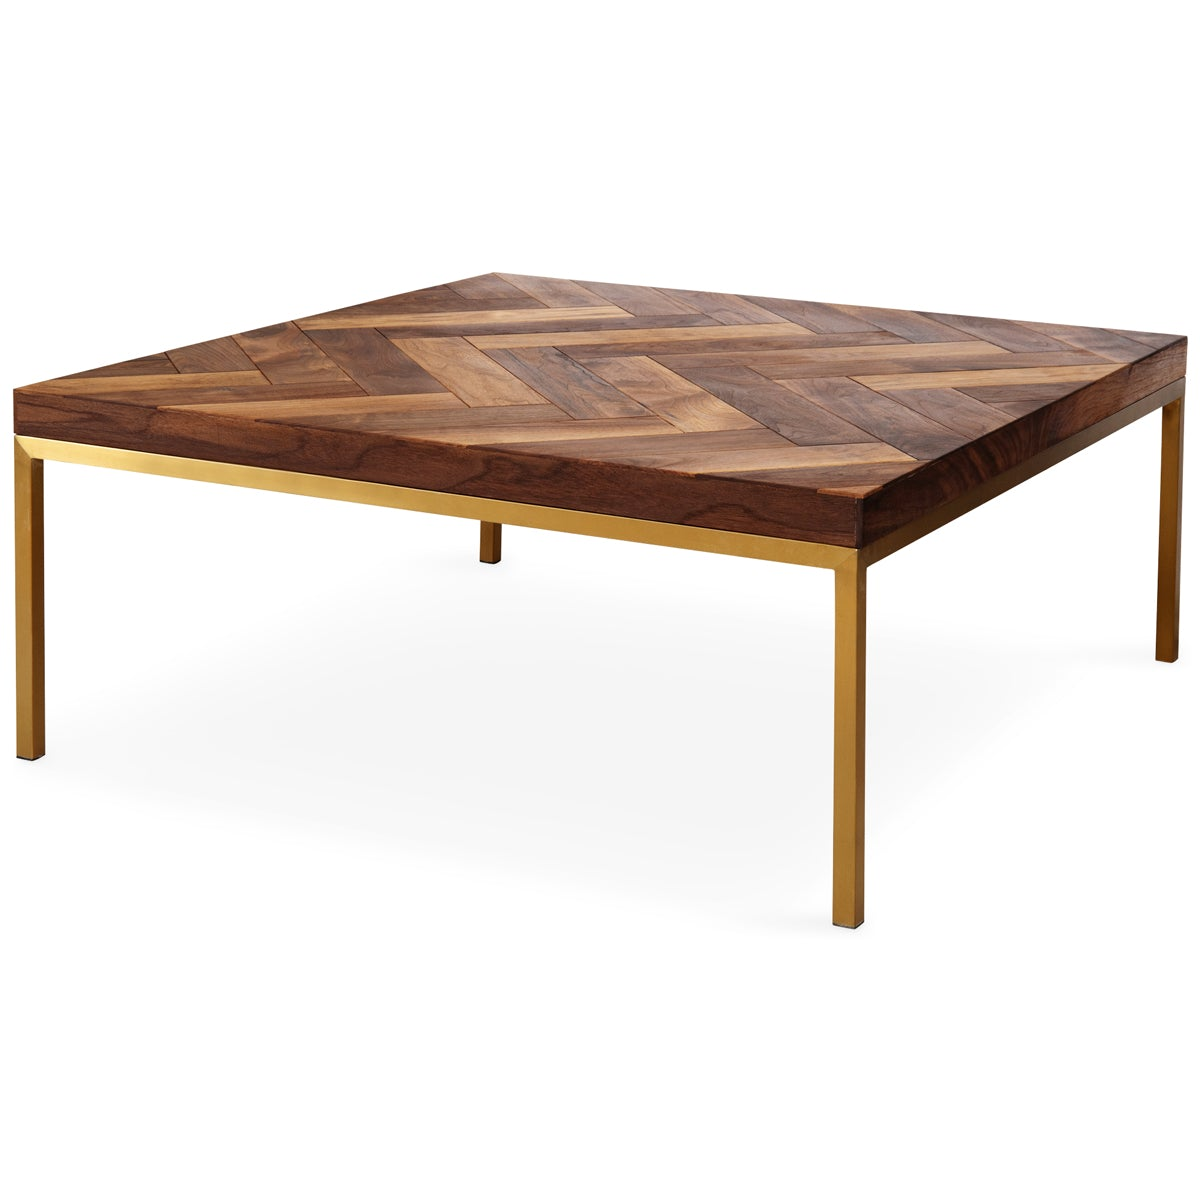 Corfu Square Coffee Table - ModShop1.com